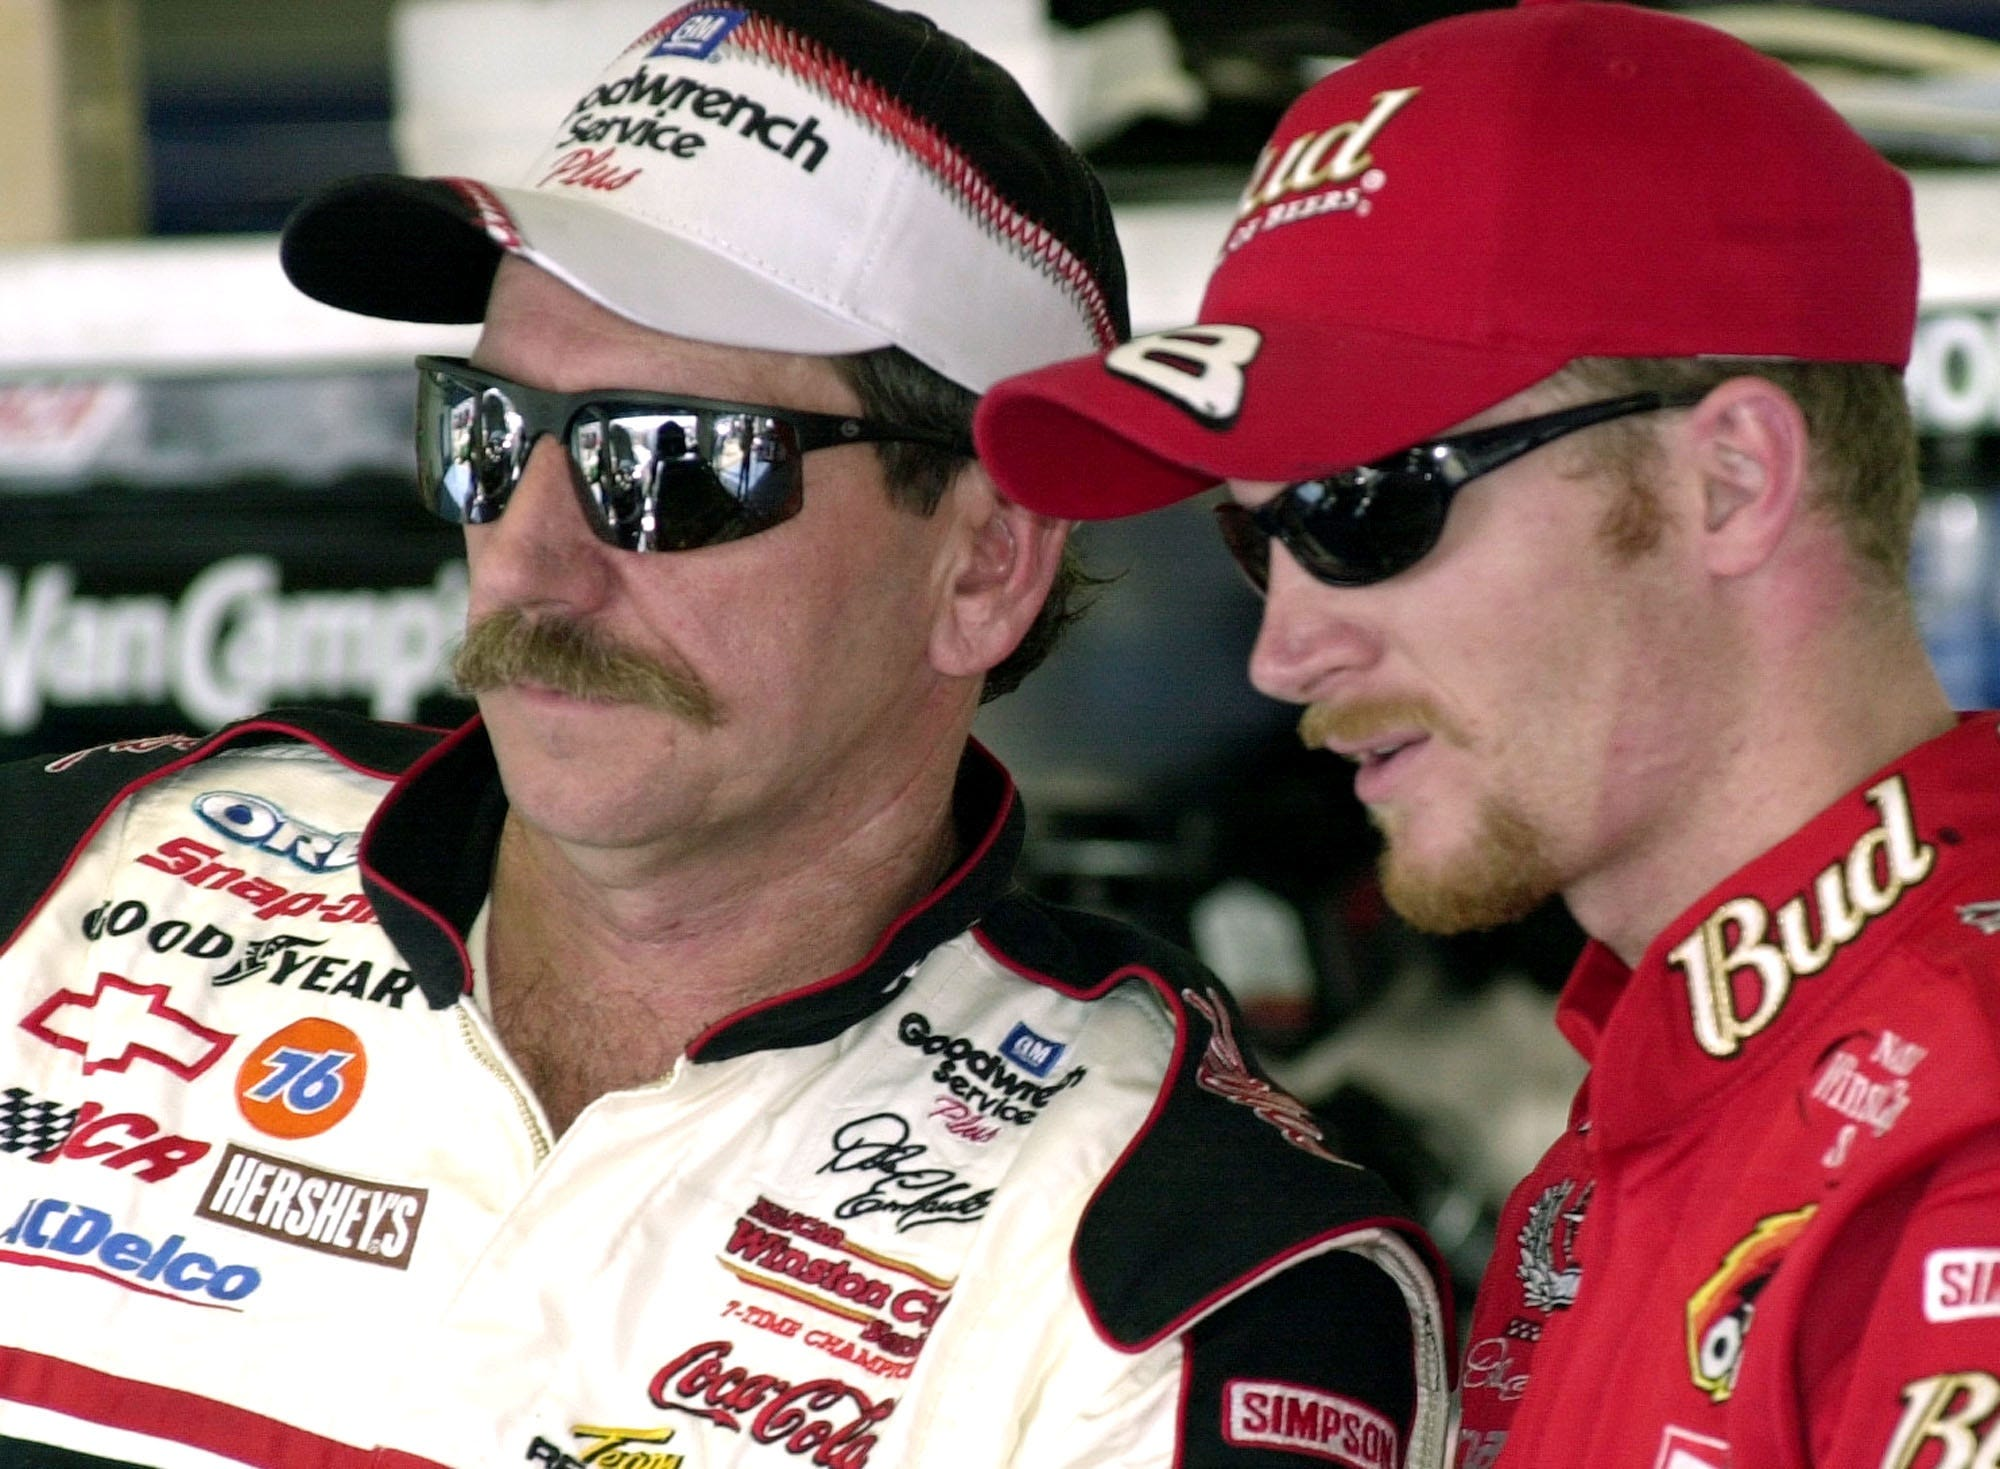 Remembering Dale Earnhardt: Junior reflects on events of 2001 and what followed that Daytona 500